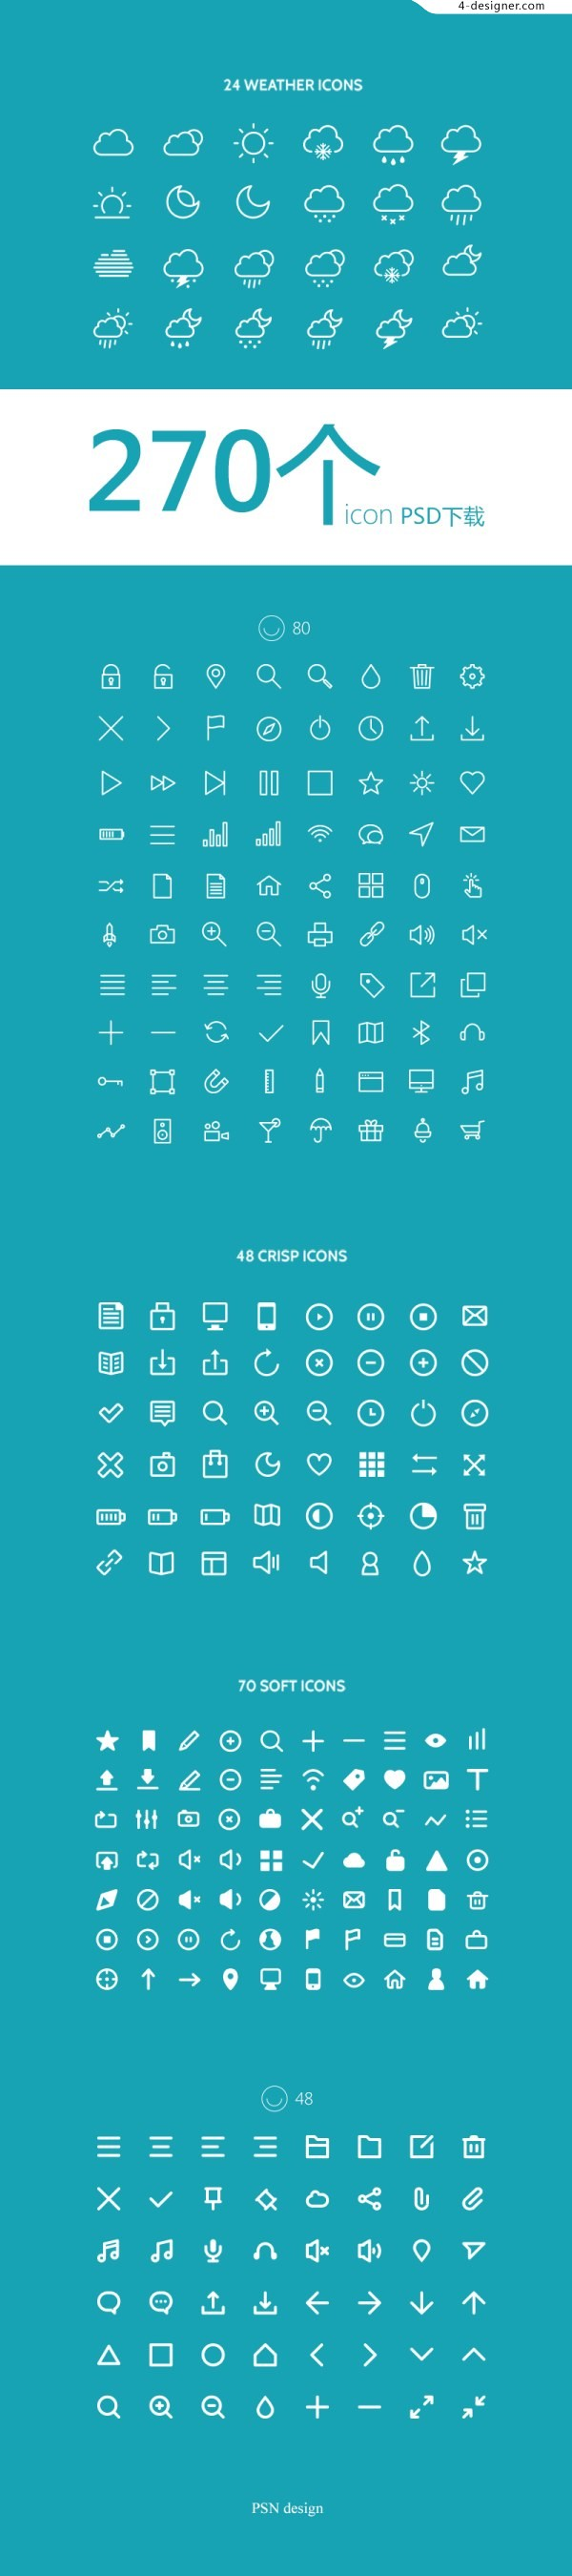 APPicon icon PSD source files